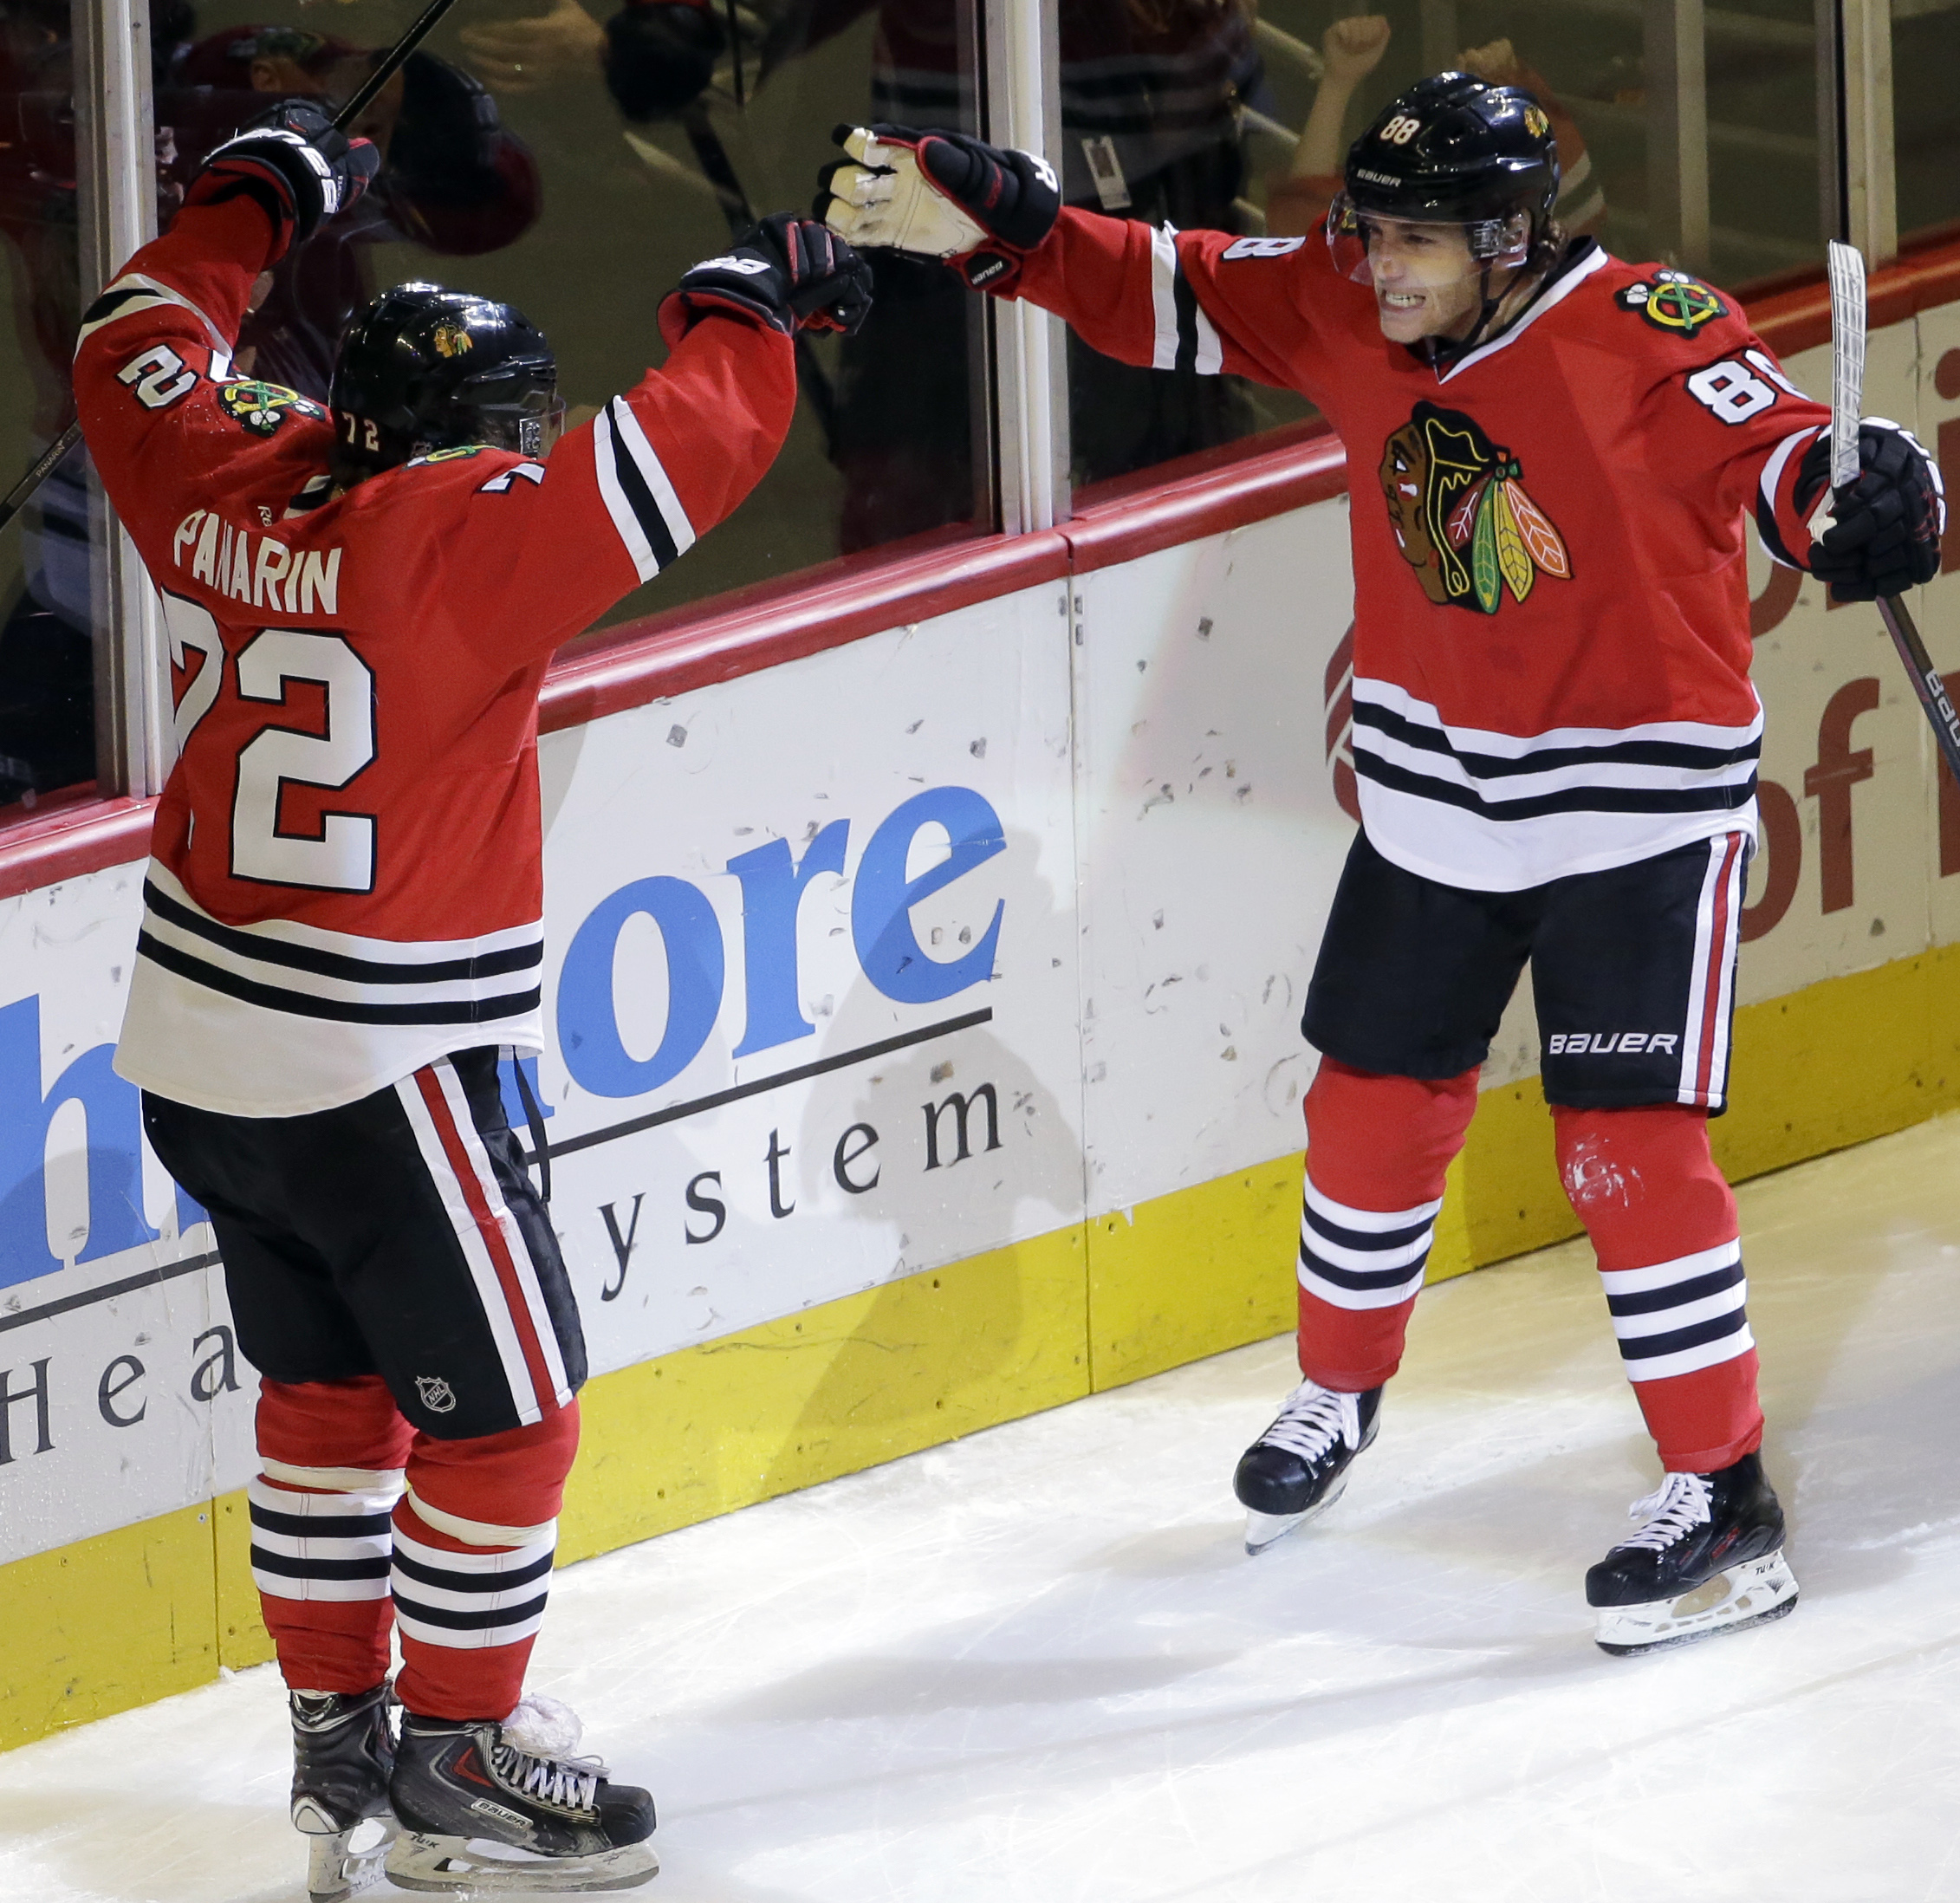 Chicago Blackhawks right wing Patrick Kane, right, celebrates with left wing Artemi Panarin after scoring his goal during the third period of an NHL hockey game against the Montreal Canadiens Sunday, Jan. 17, 2016, in Chicago. The Blackhawks won 5-2. (AP